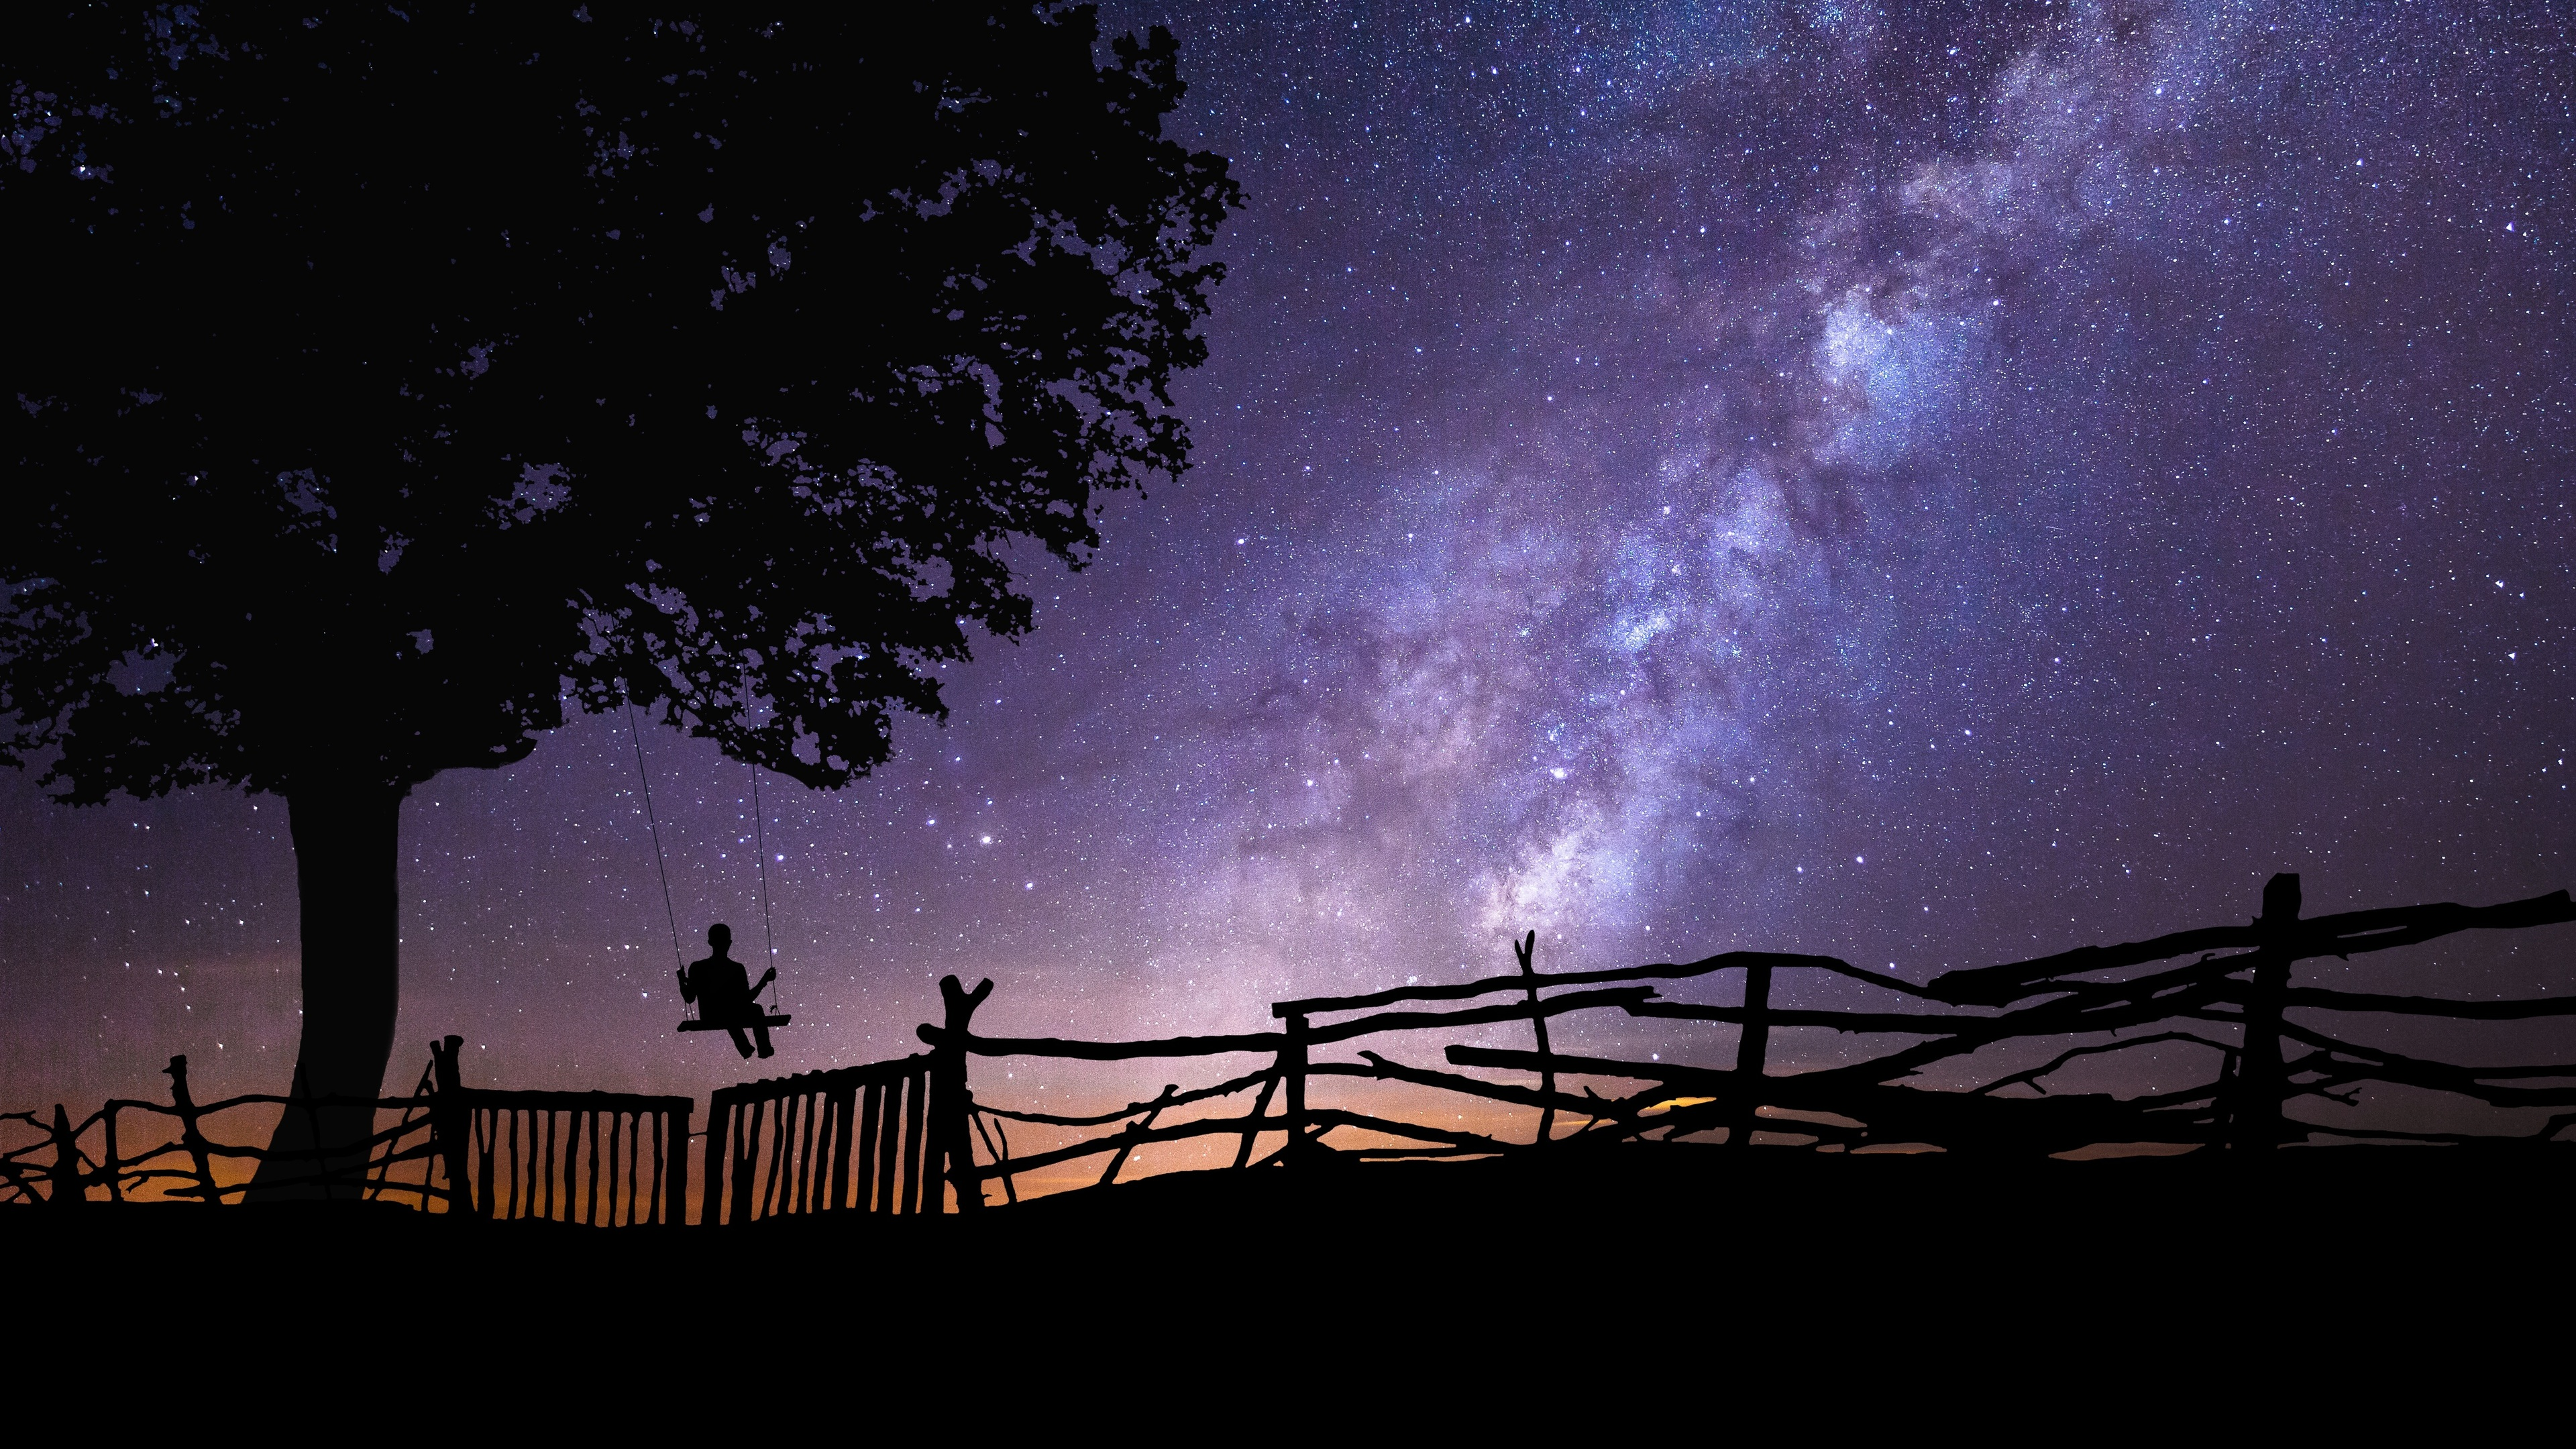 swing with the stars in the sky 4k 1540135360 - Swing With The Stars In The Sky 4k - swing wallpapers, stars wallpapers, sky wallpapers, nature wallpapers, hd-wallpapers, galaxy wallpapers, 5k wallpapers, 4k-wallpapers